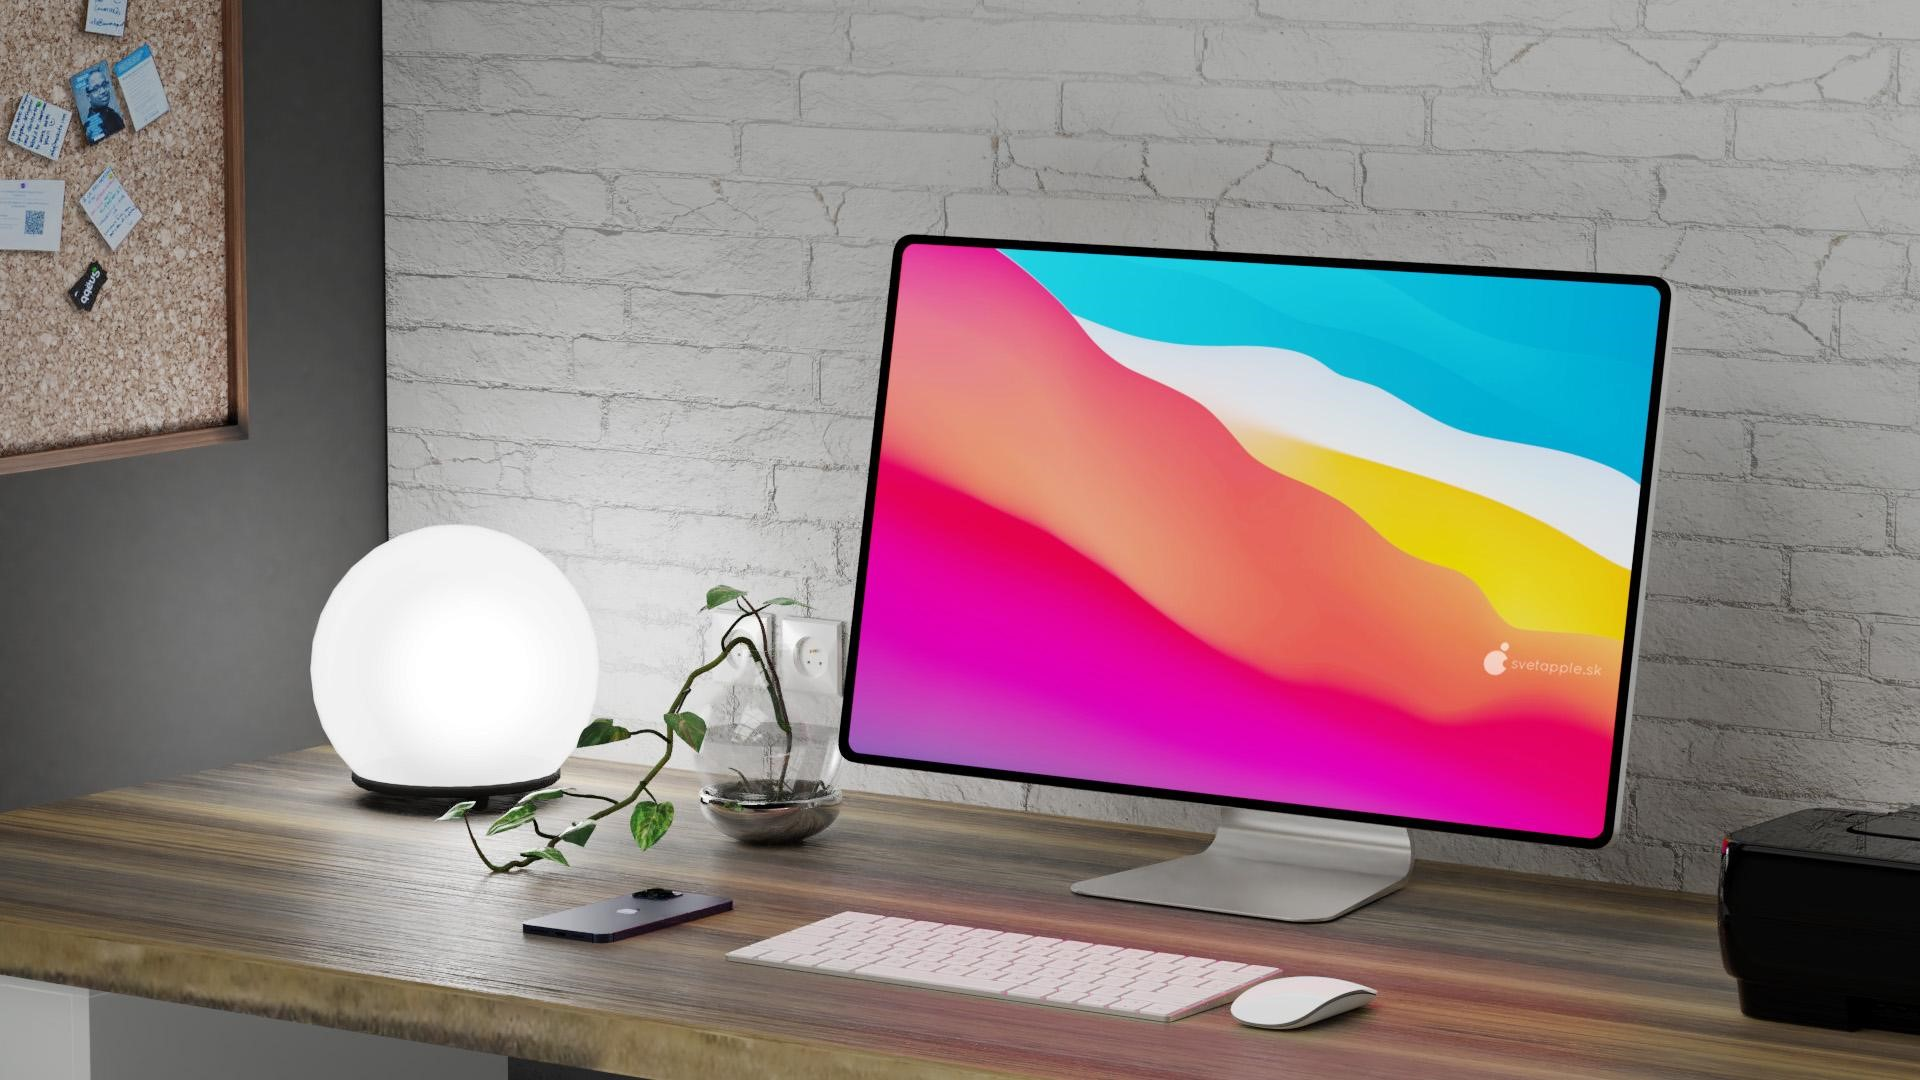 iMac 2021 Release Date, Price & Specs: All You Need to Know - Rapid Repair